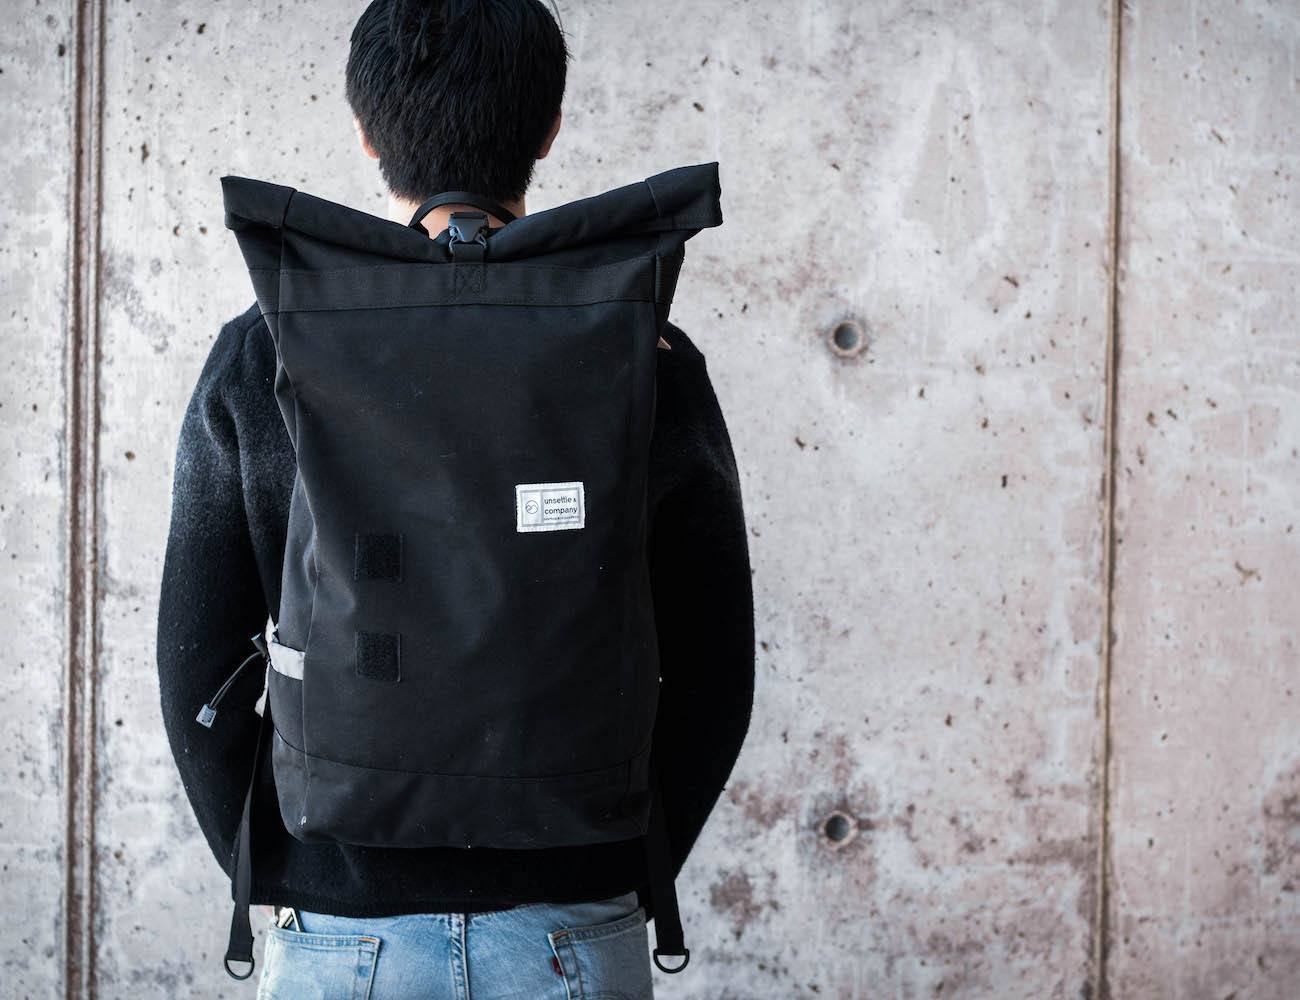 The Commuter Unroll - The Best Modular Weatherproof Backpack ...